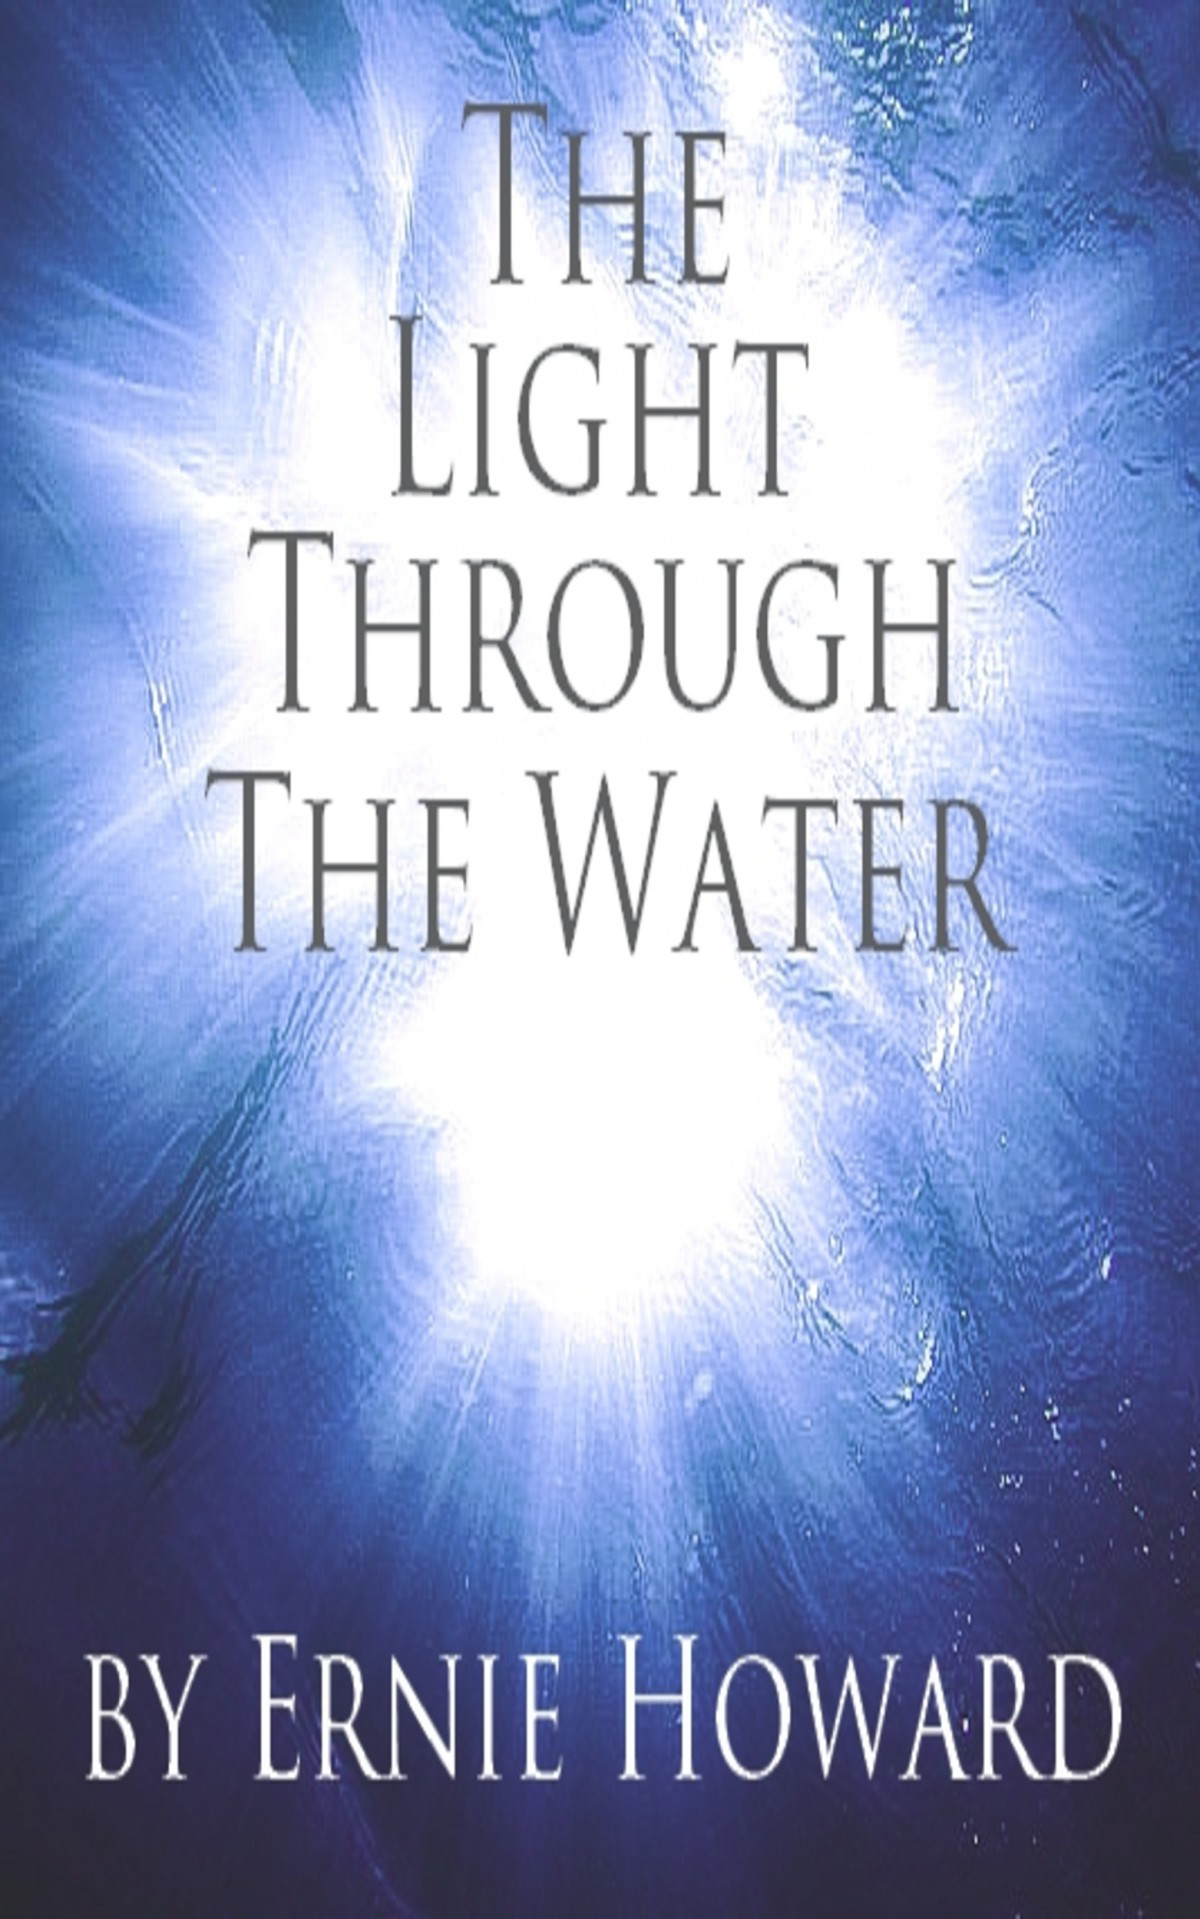 Trailer for The Light Through the Water